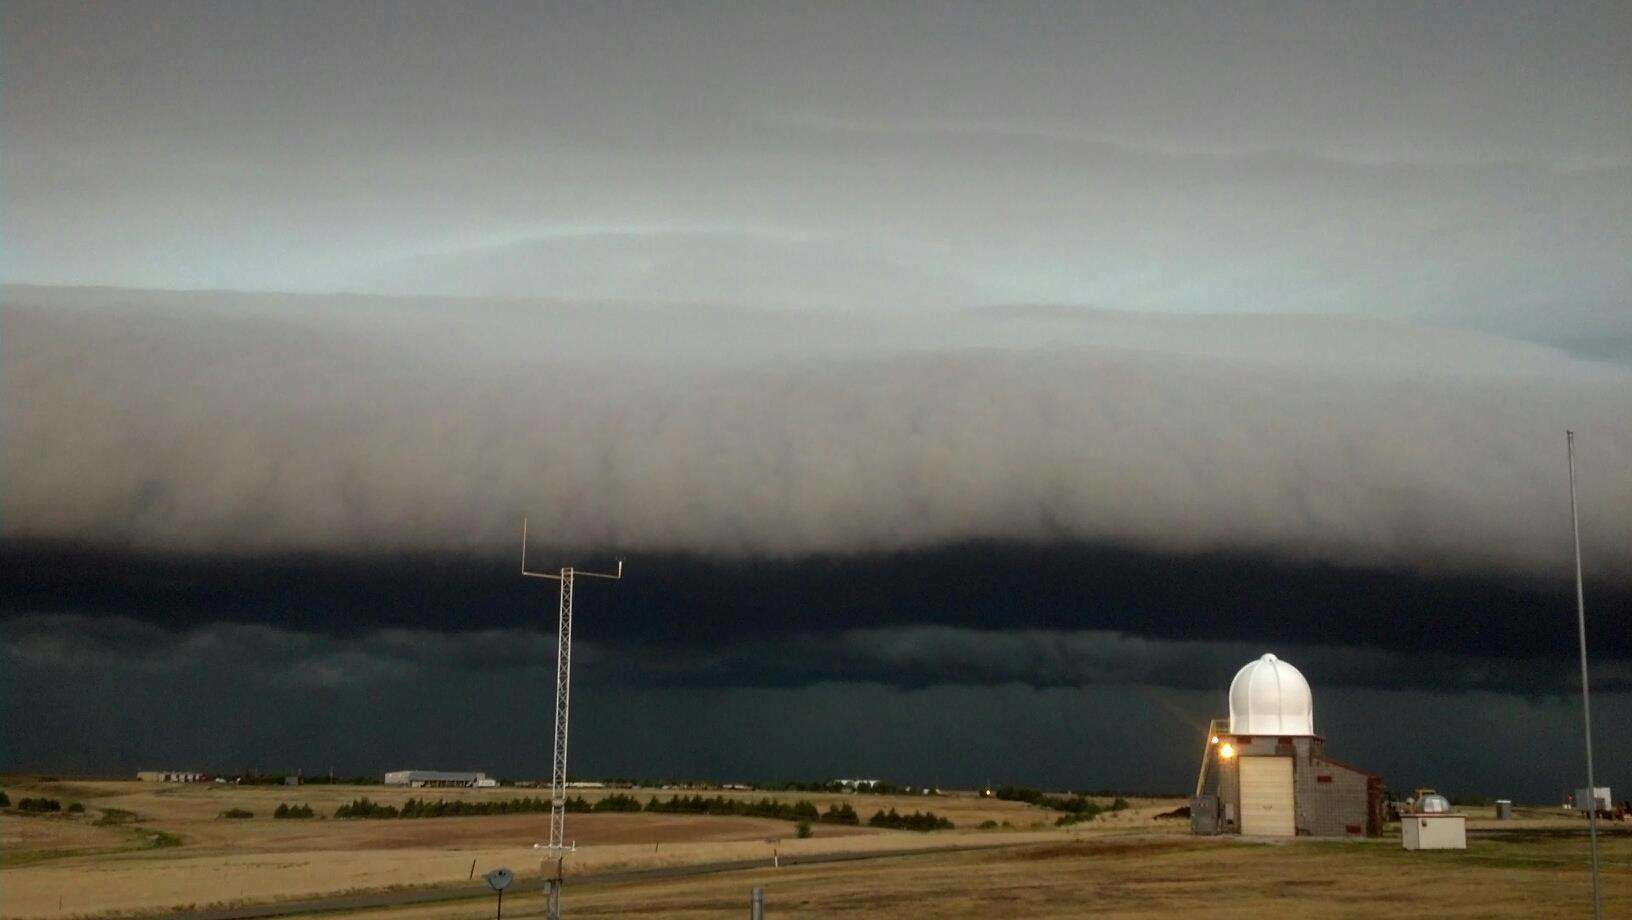 Severe Thunderstorm heading into the Dodge City, Kansas, National Weather Service Office. The front part is called a shelf cloud or roll cloud and contains severe winds of 60 mph plus. Photo taken on 12 Aug 2012.